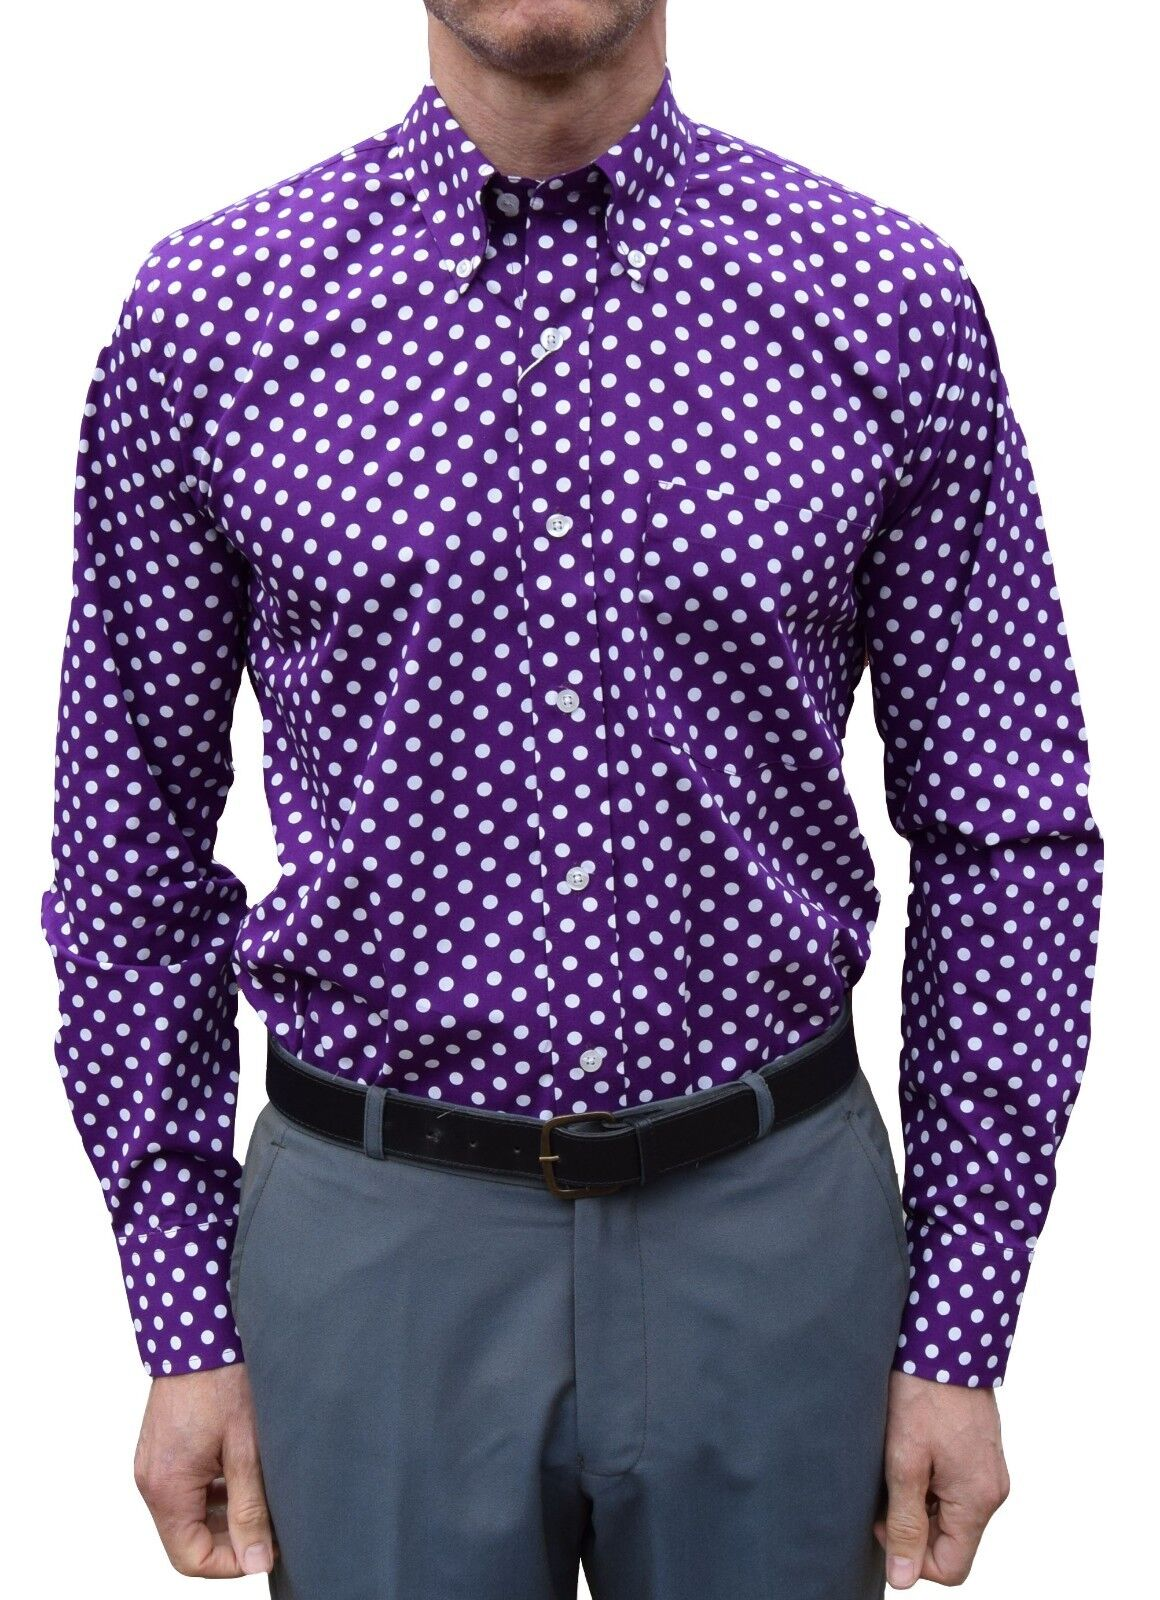 PURPLE POLKA DOT SHIRT-MOD CLOTHING RELCO NORTHERN SOUL MODS SCOOTERIST